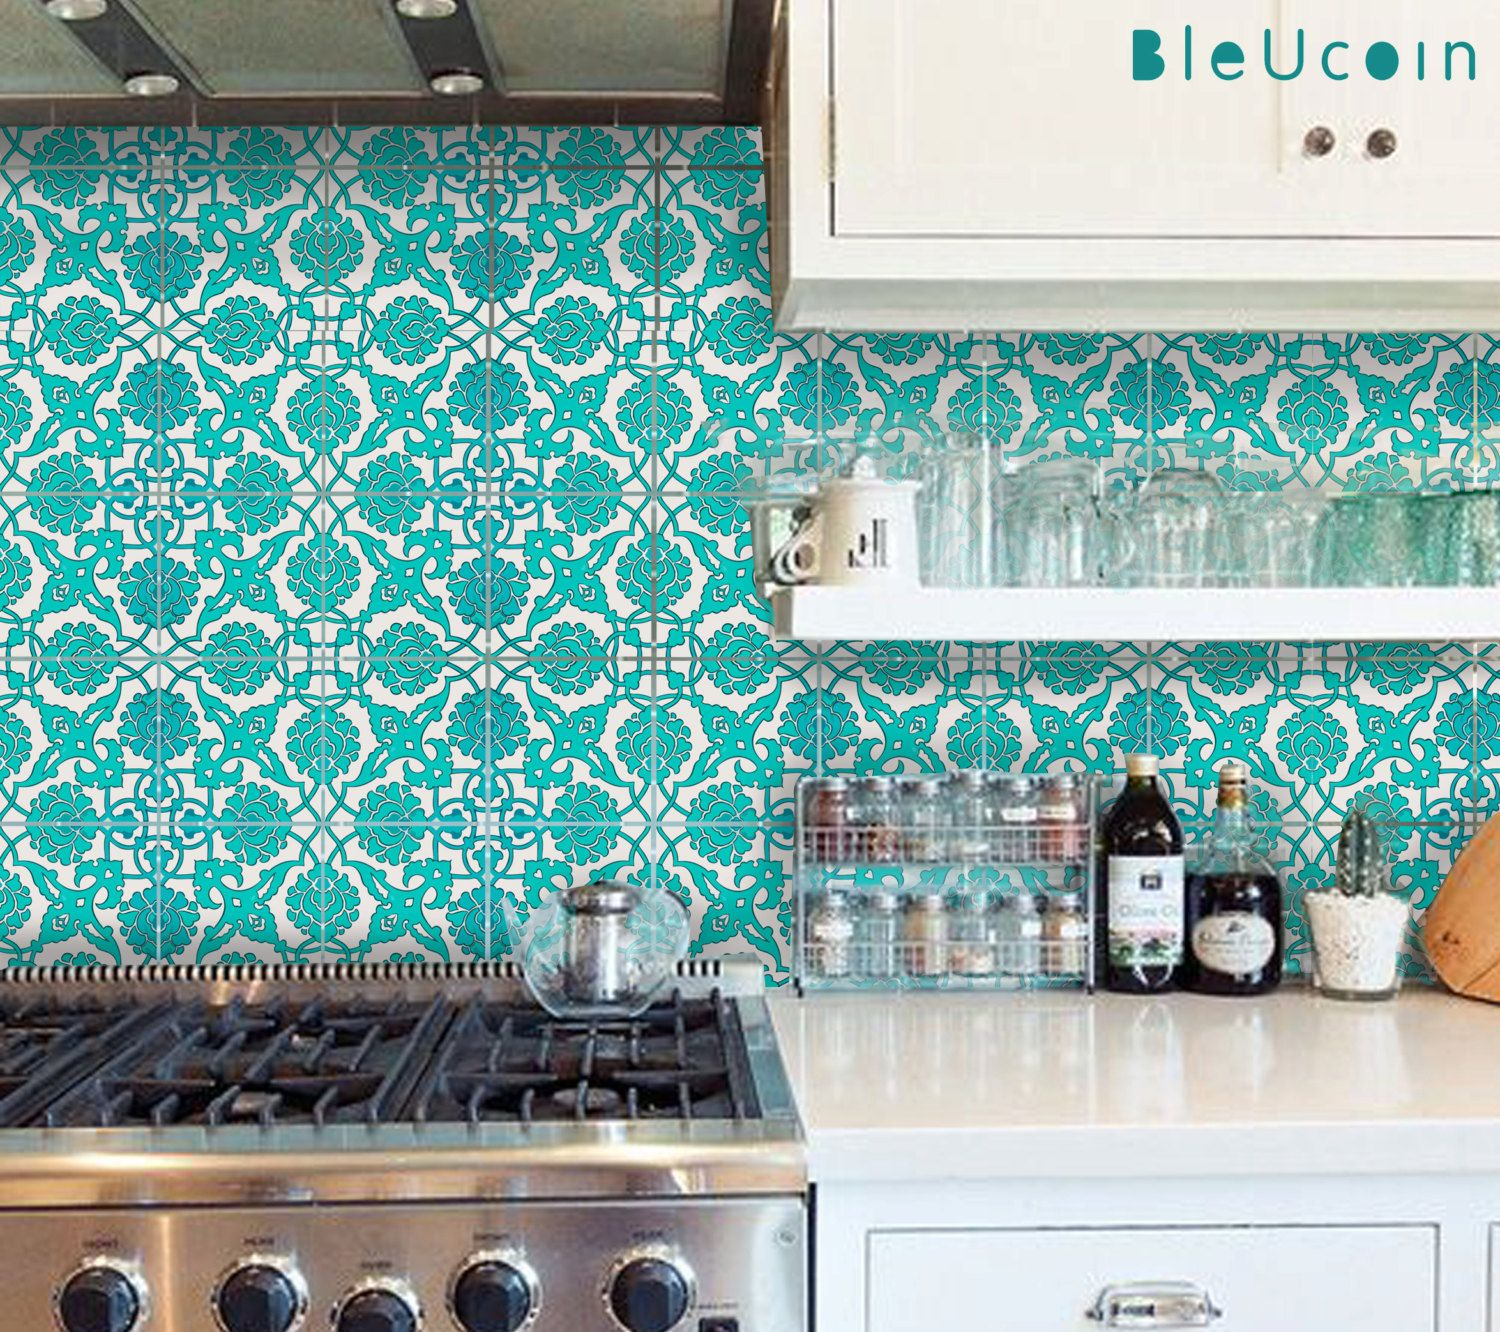 Tile Wall Floor Vinyl Decal Indian Teal Hand Painted Kitchen Bathroom Removable Stair Riser Sticker Pack of 44